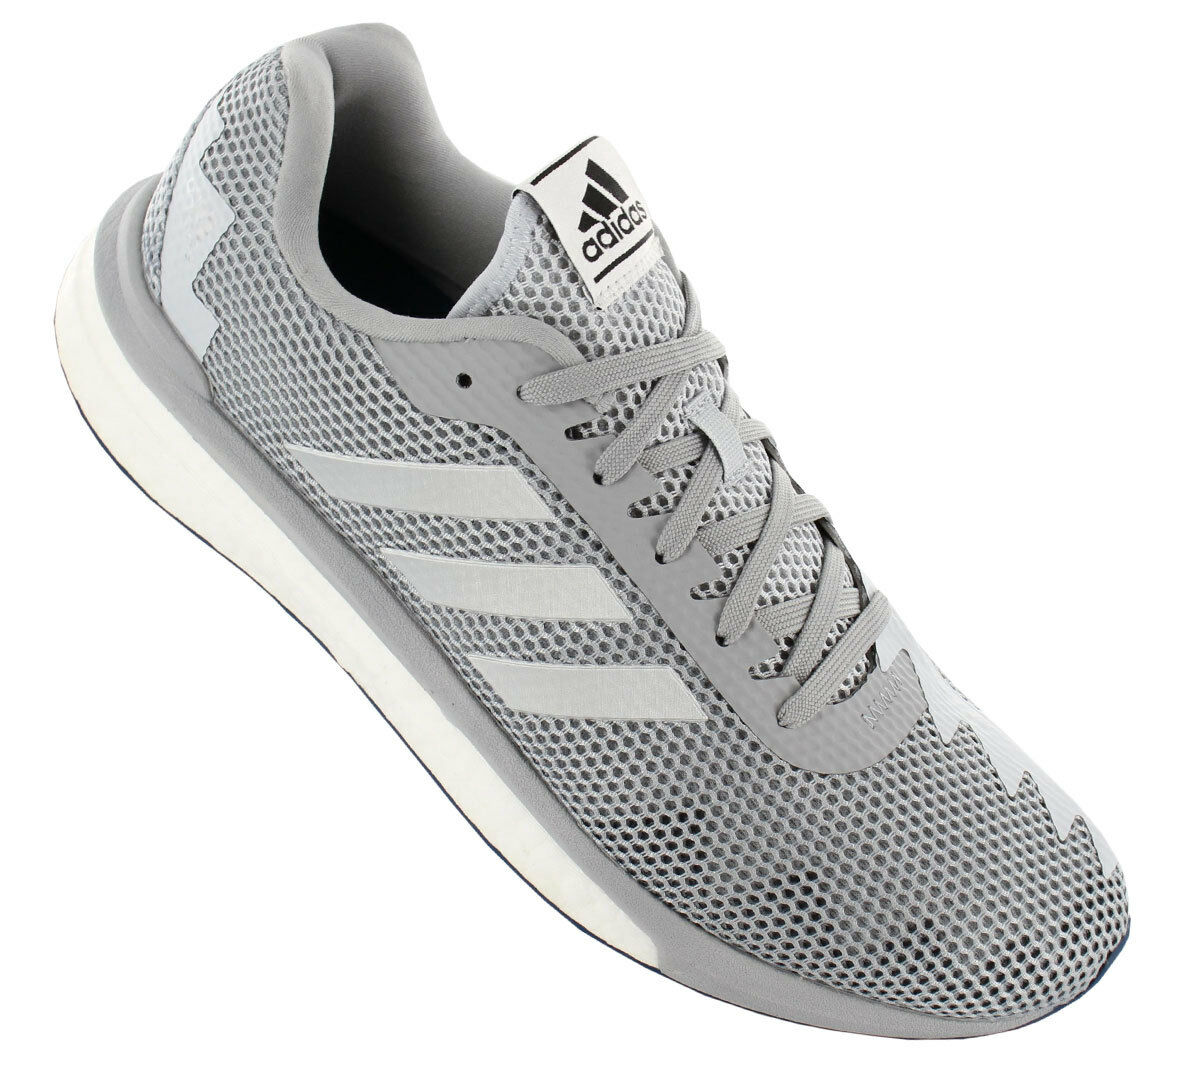 NEW adidas Vengeful M Boost Boost Boost AQ6084 Men''s shoes Trainers Sneakers SALE 355db1